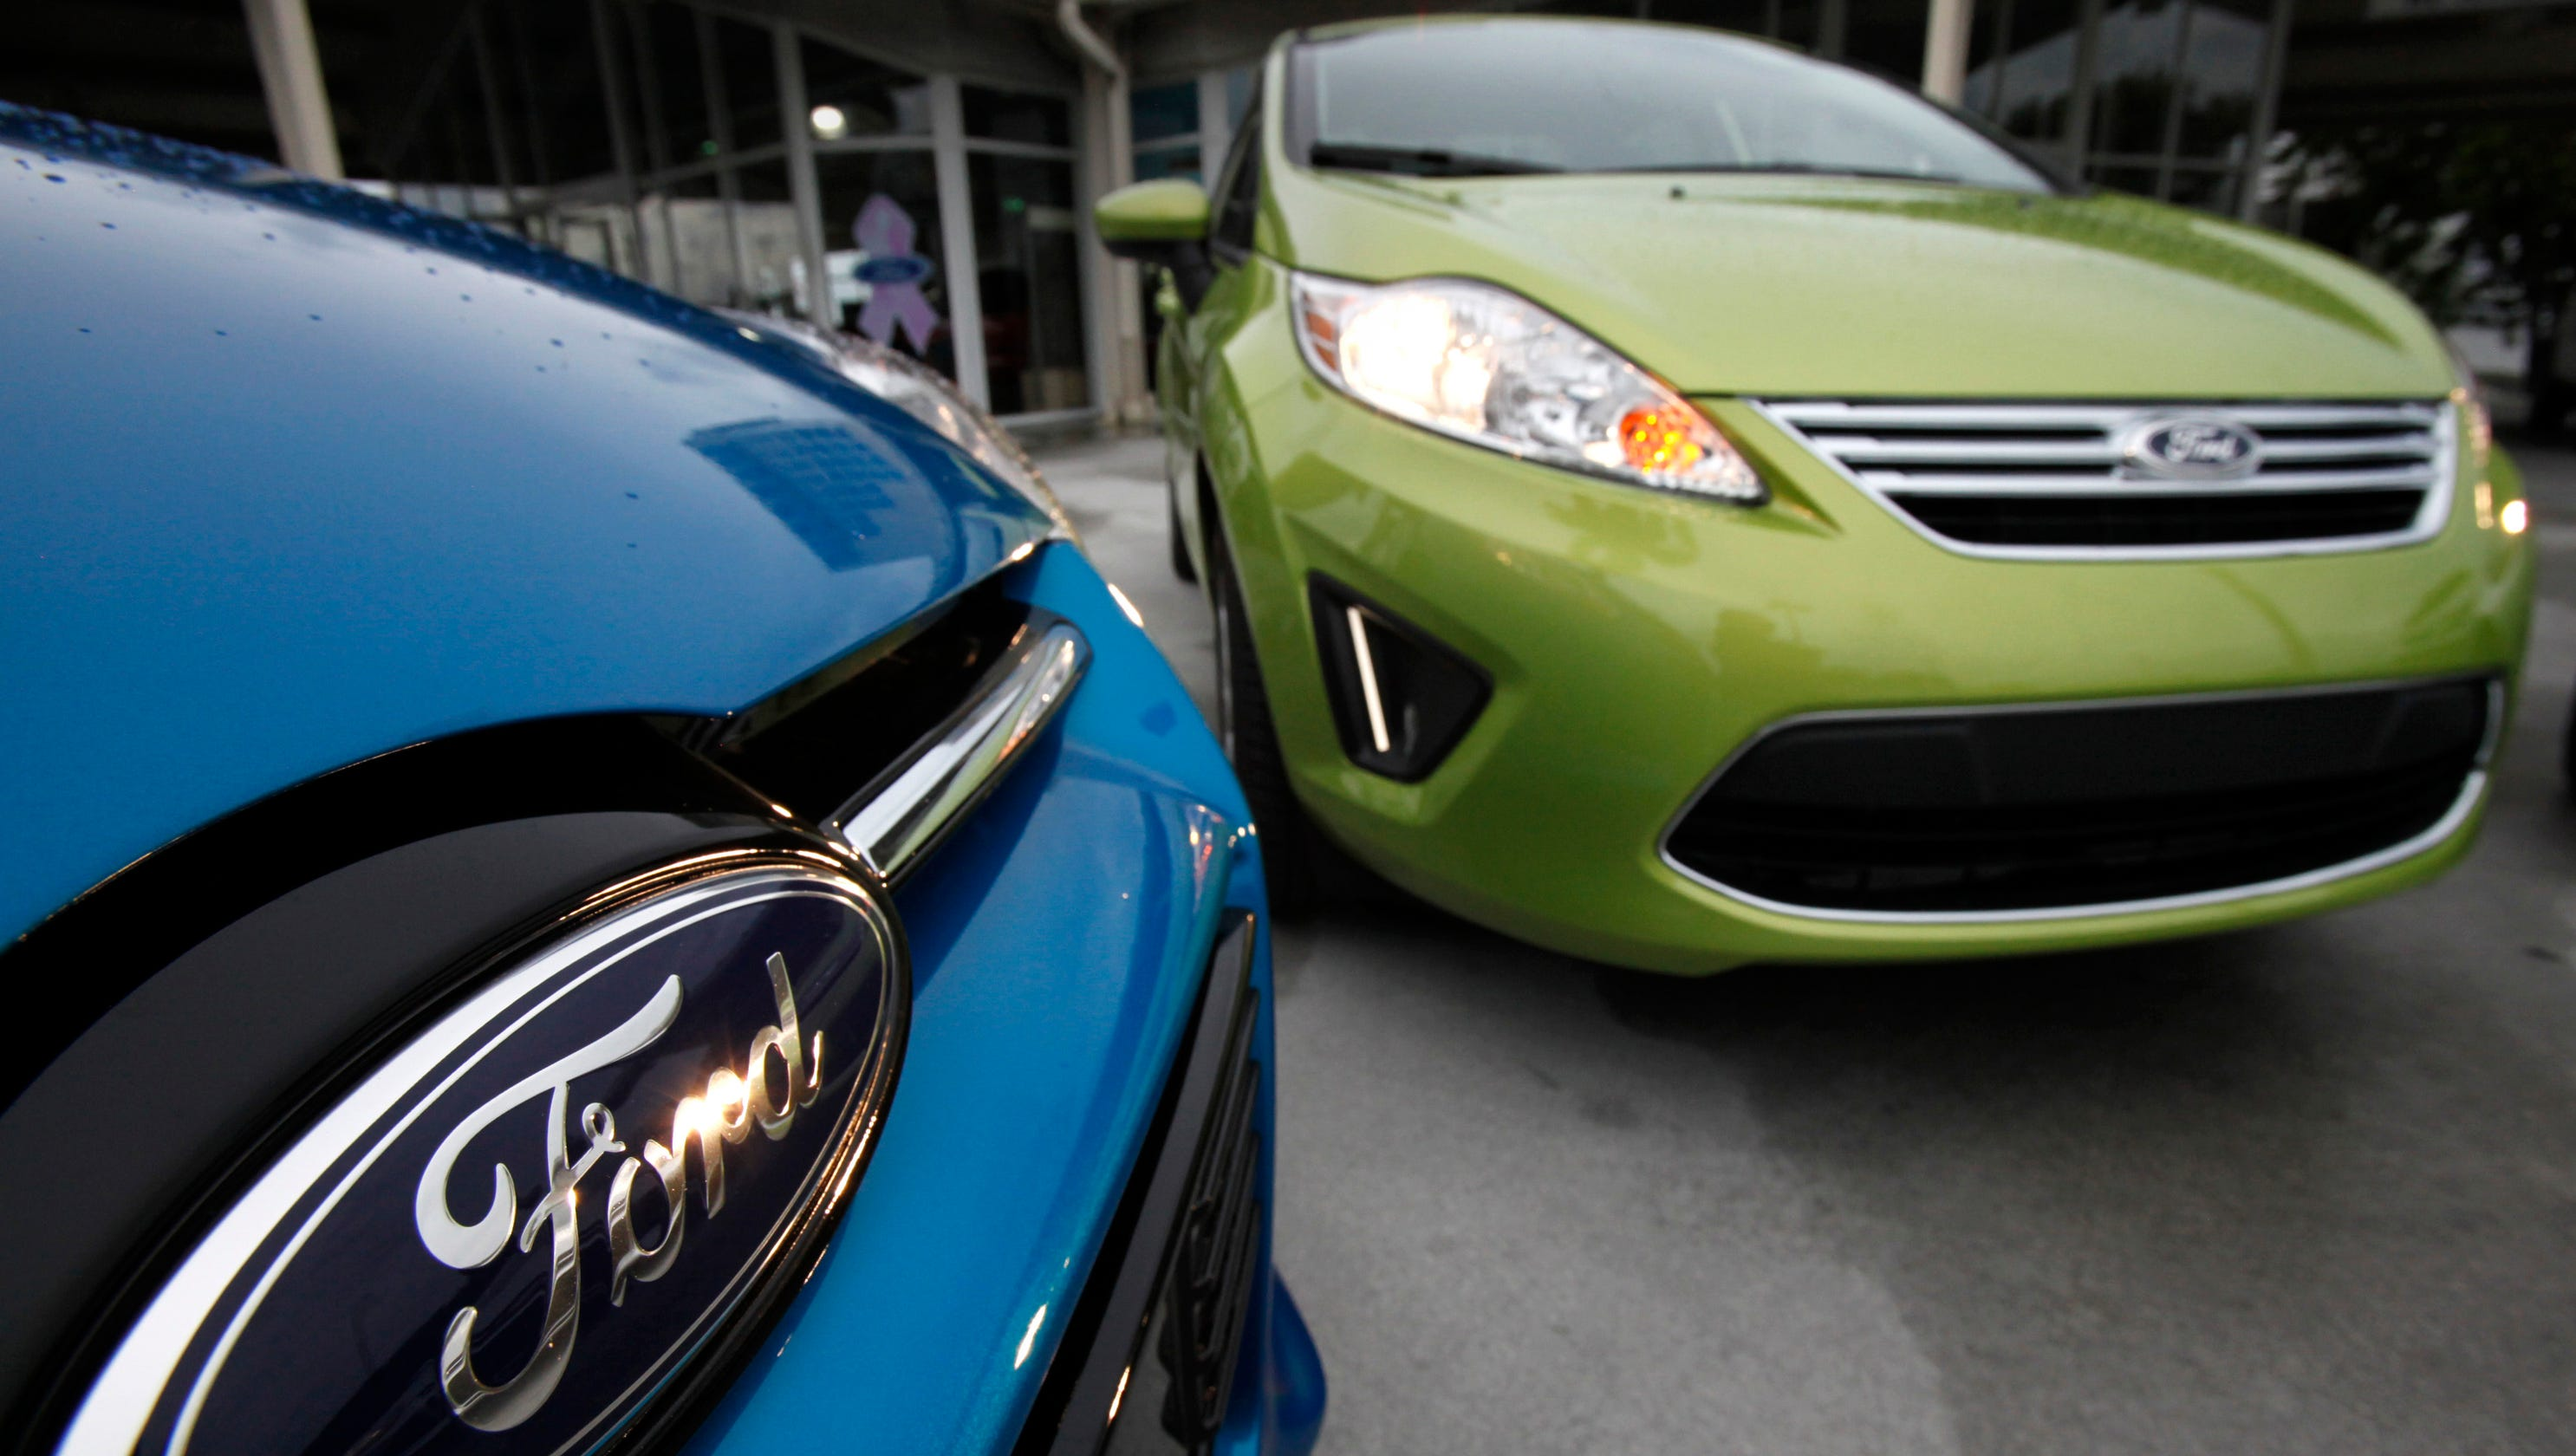 Ford responds to investigation of Focus, Fiesta transmissions